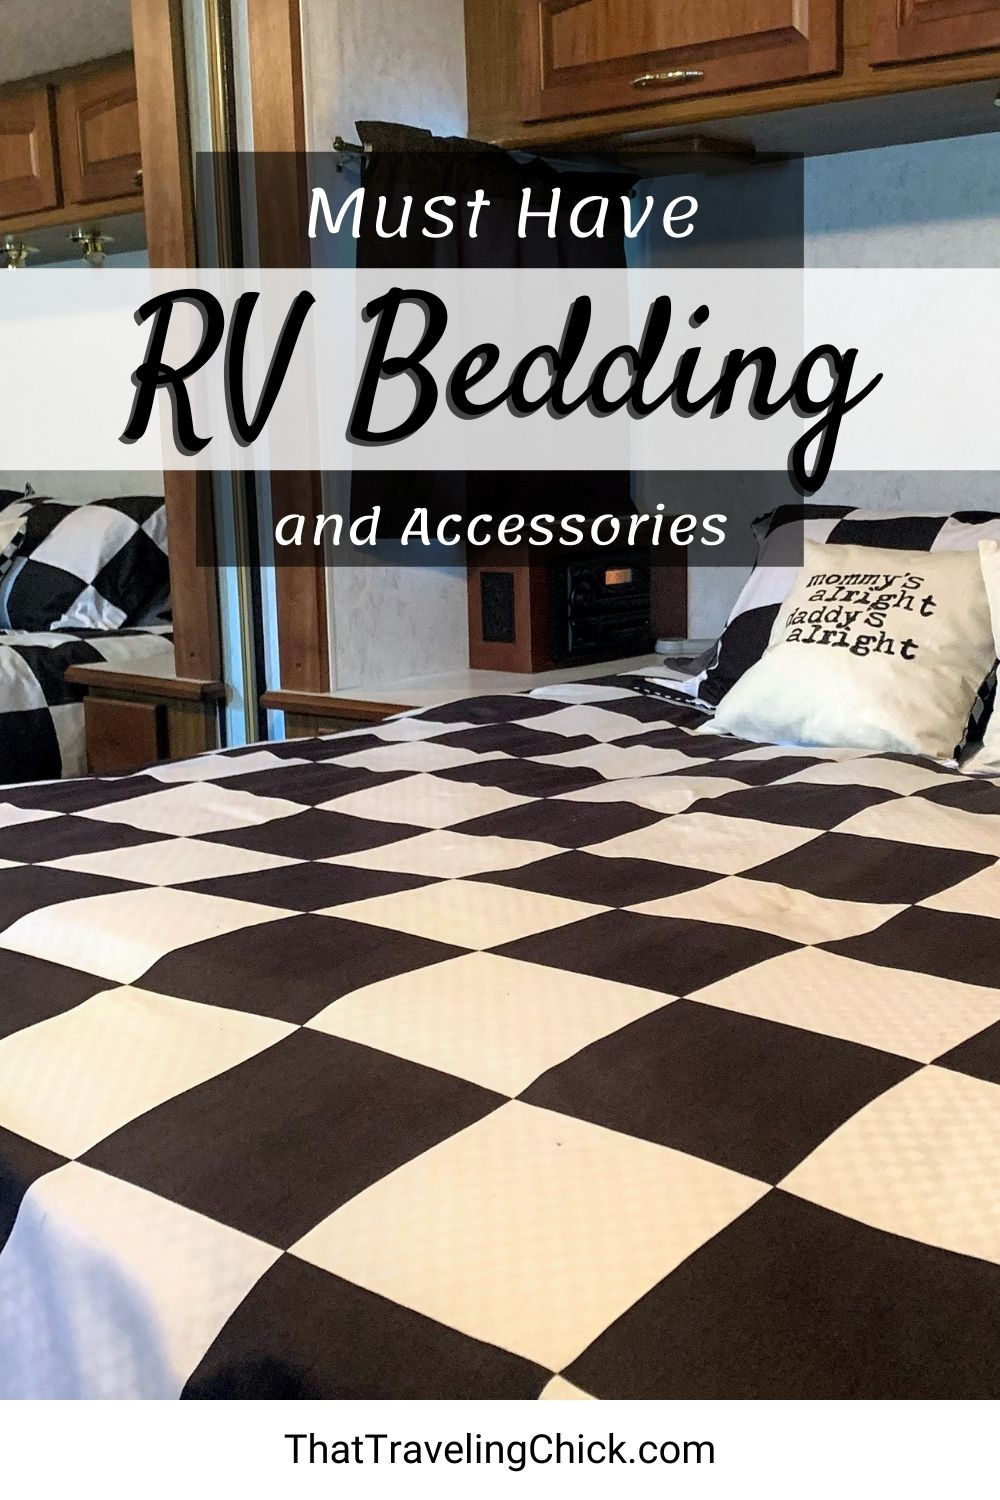 Must Have RV Bedding and Accessories #rvbedding #musthavervaccessories